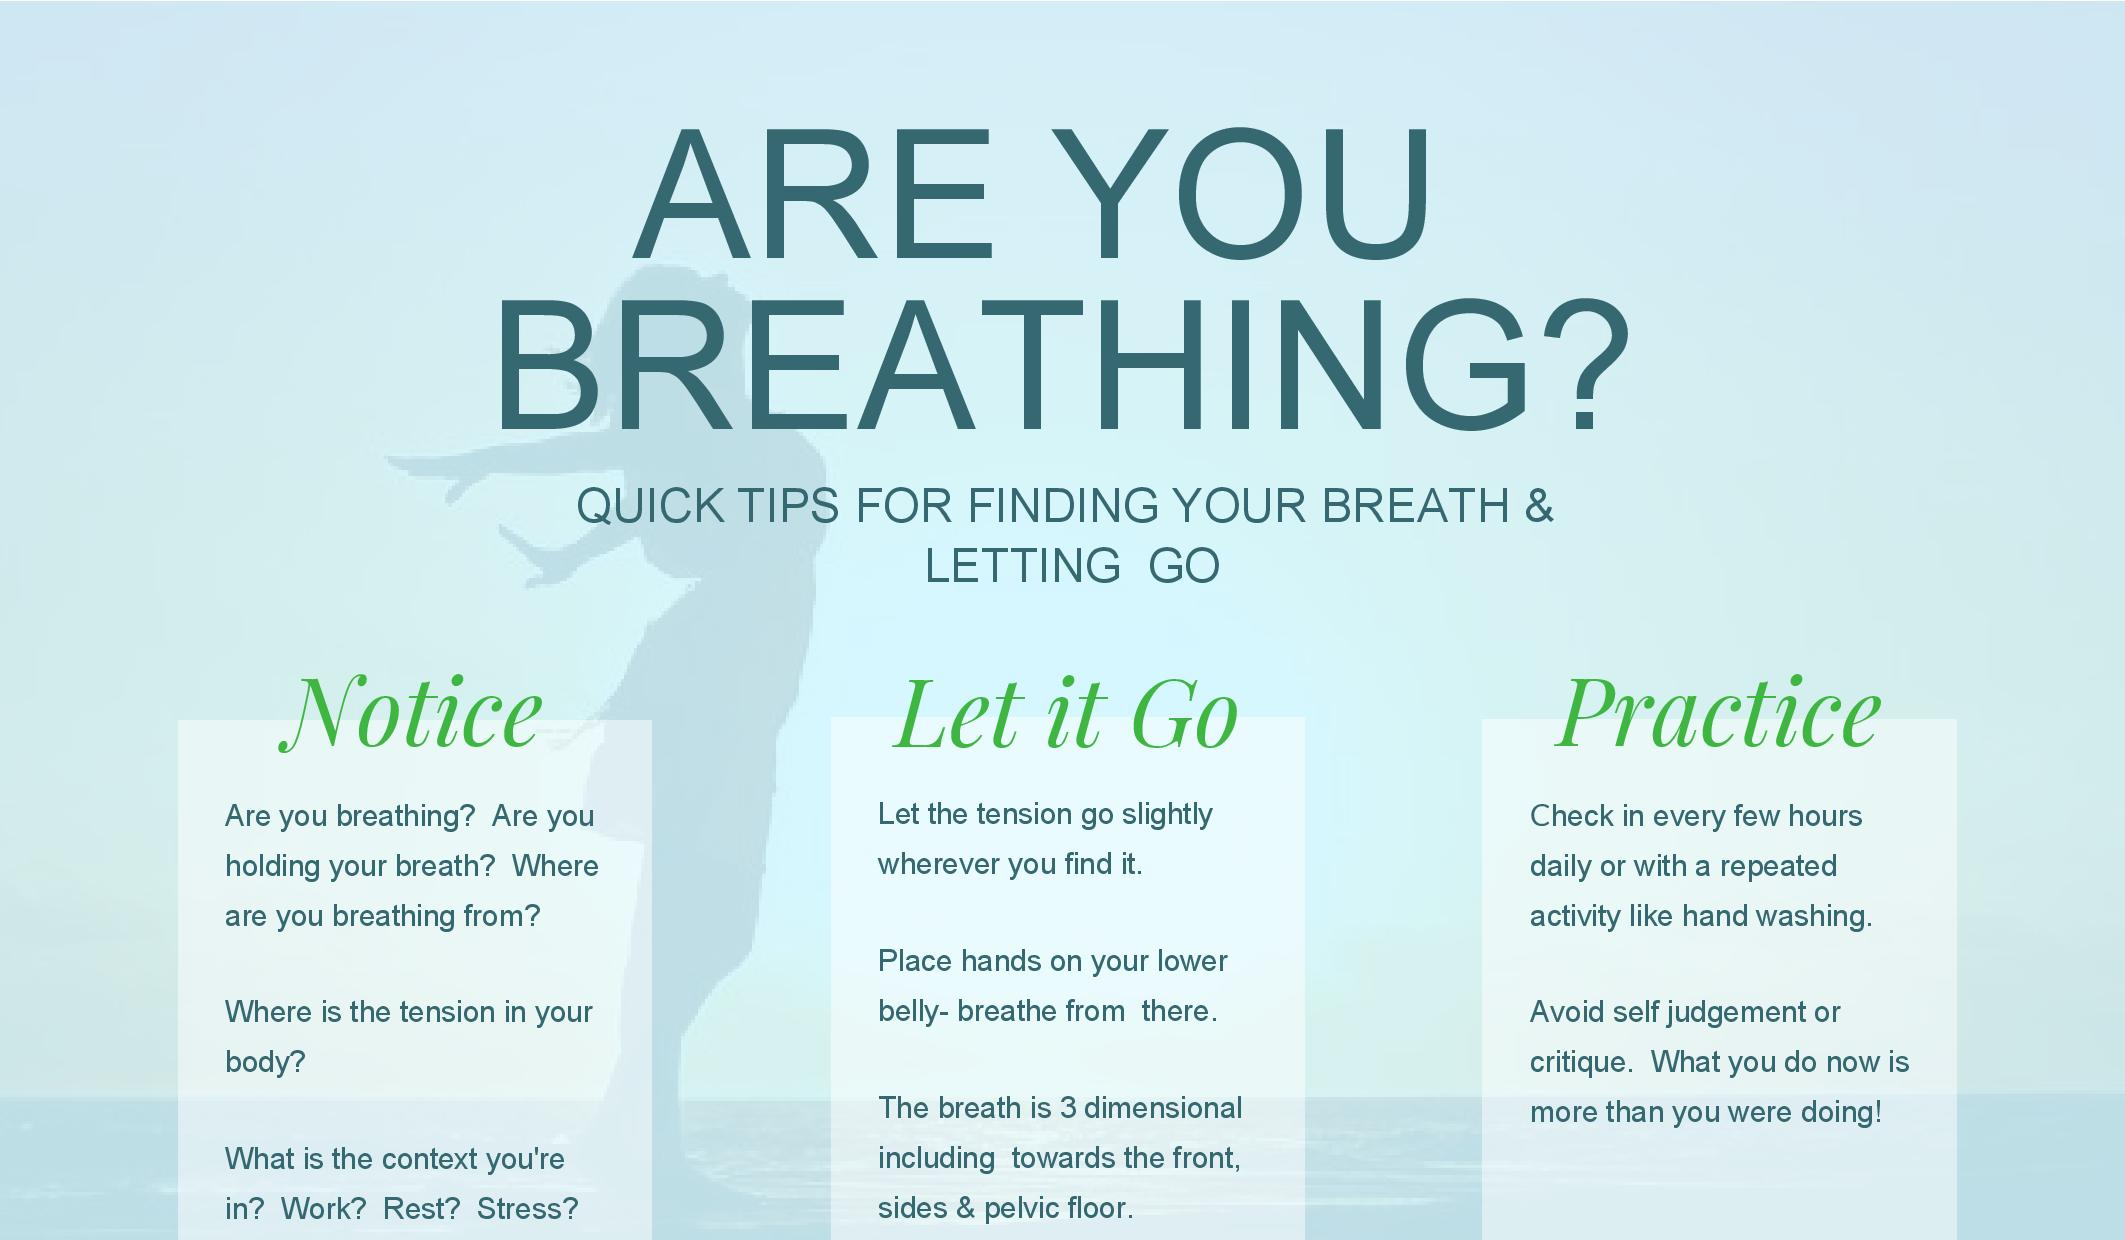 3 Tips for Finding Your Breath and Letting Go